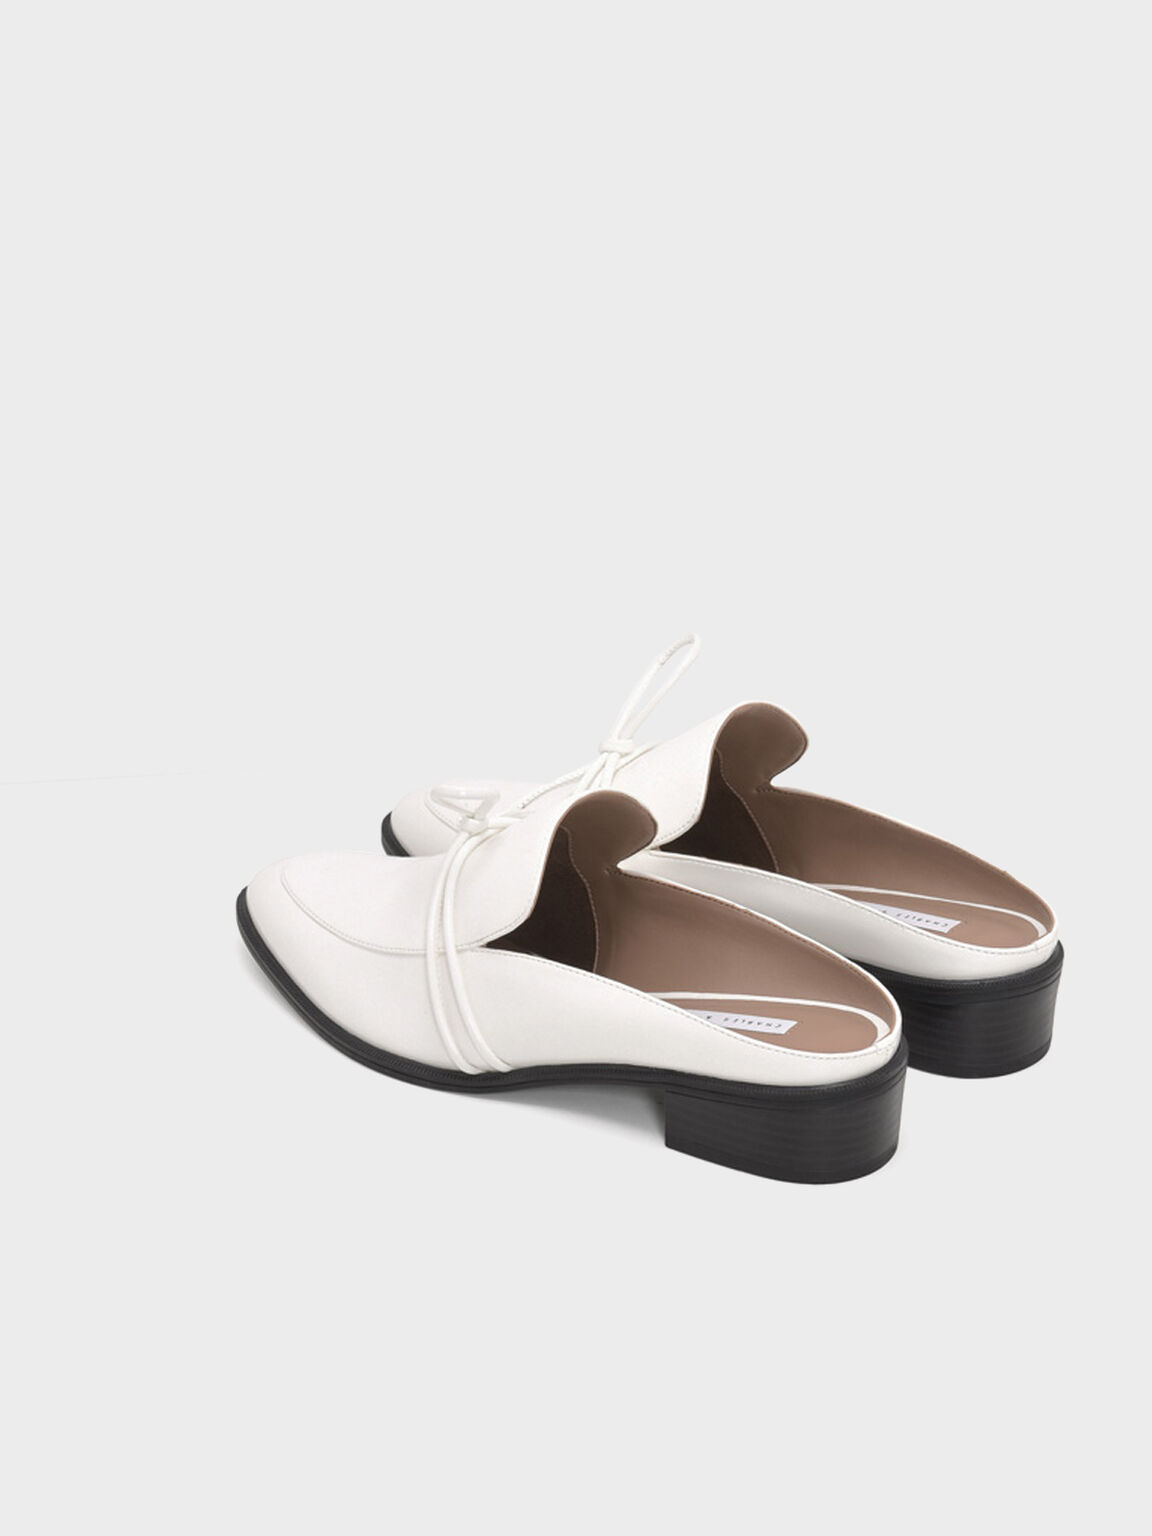 Almond Toe Knot Mules, White, hi-res